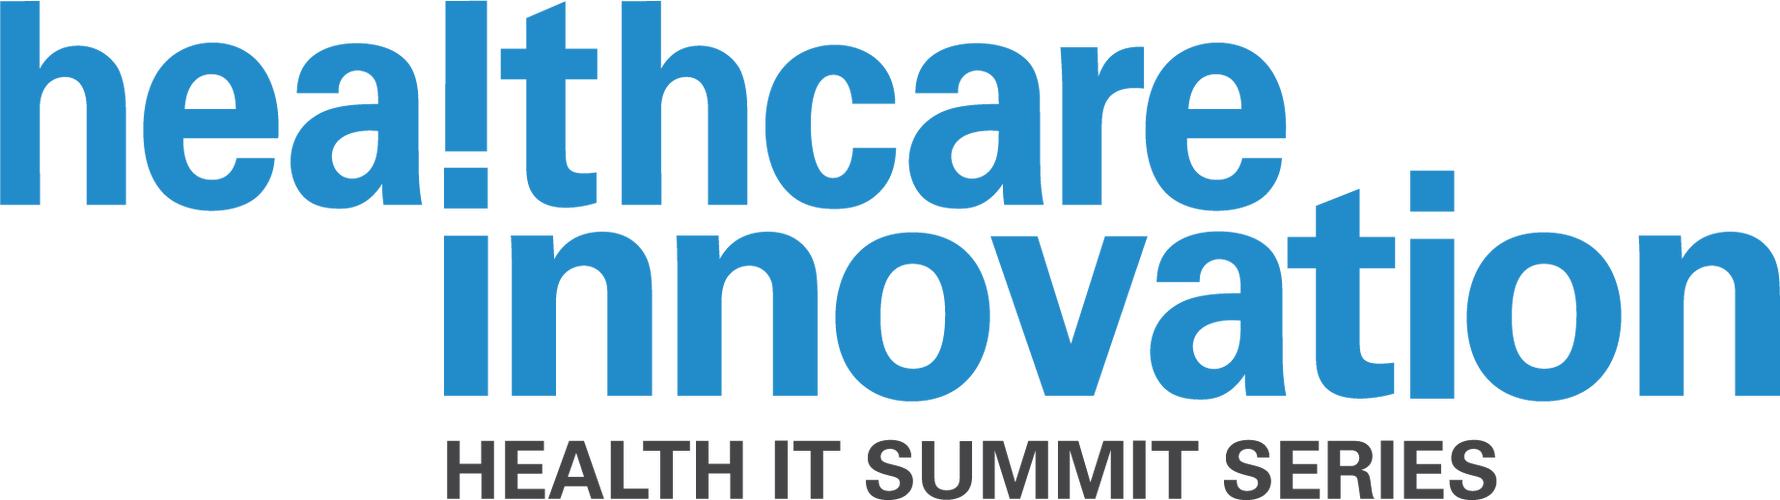 2019 Mid-Atlantic Health IT Summit - Philadelphia